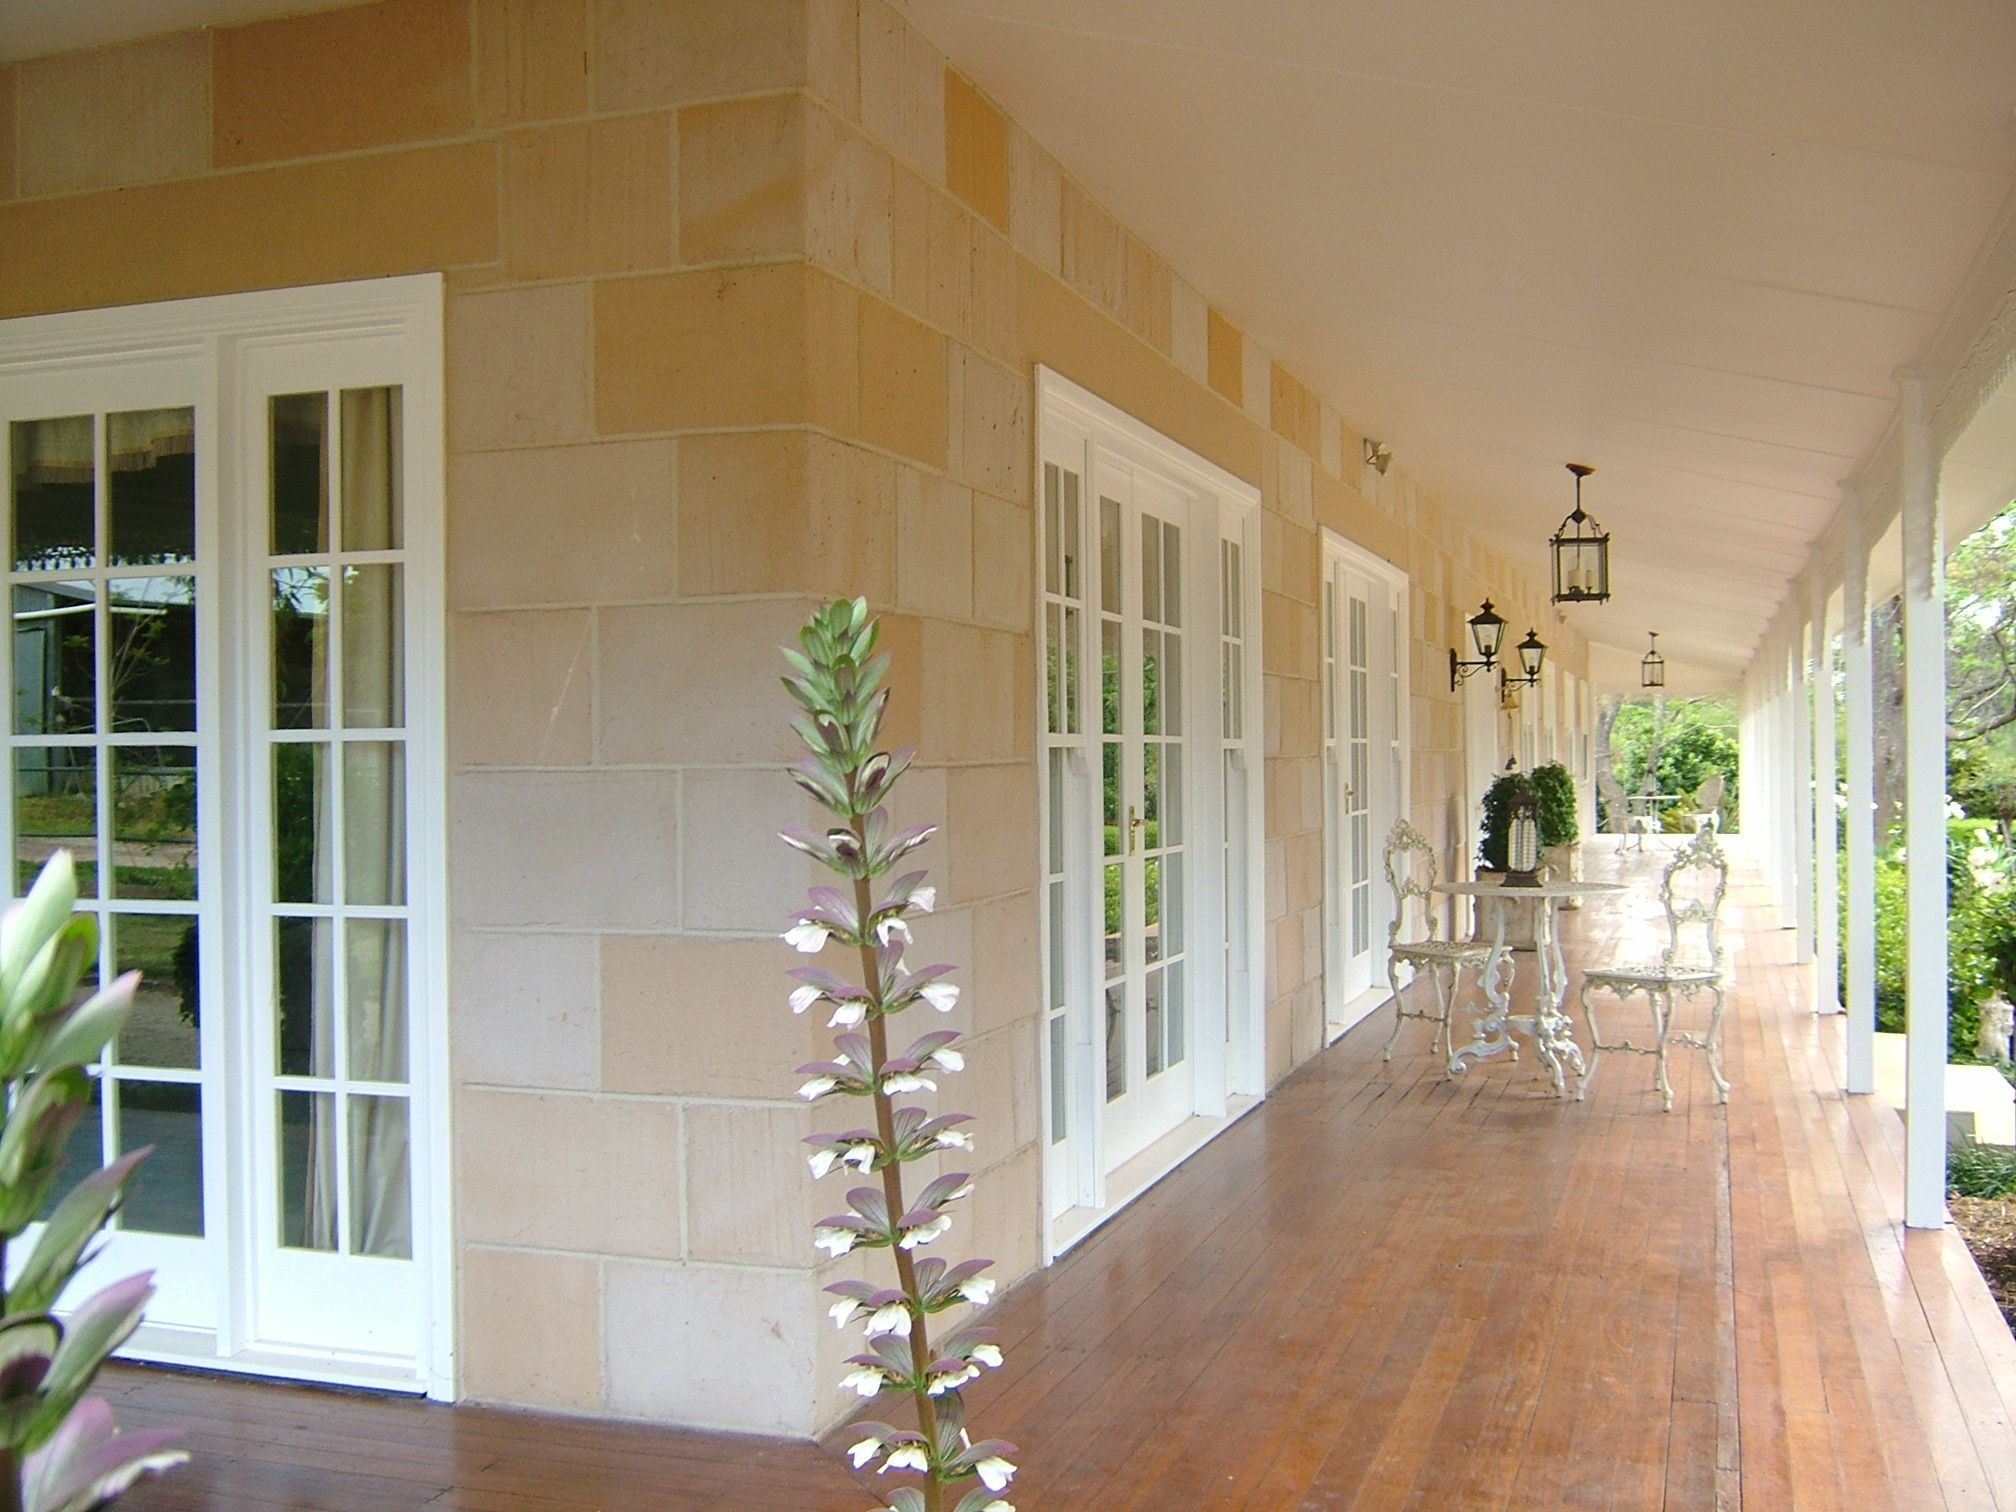 Classic Colonial Sandstone Homes Full Of Real Warmth And Charm See More Stunning Ecosmart Stone Australian Country Houses Facade House Country Home Exteriors